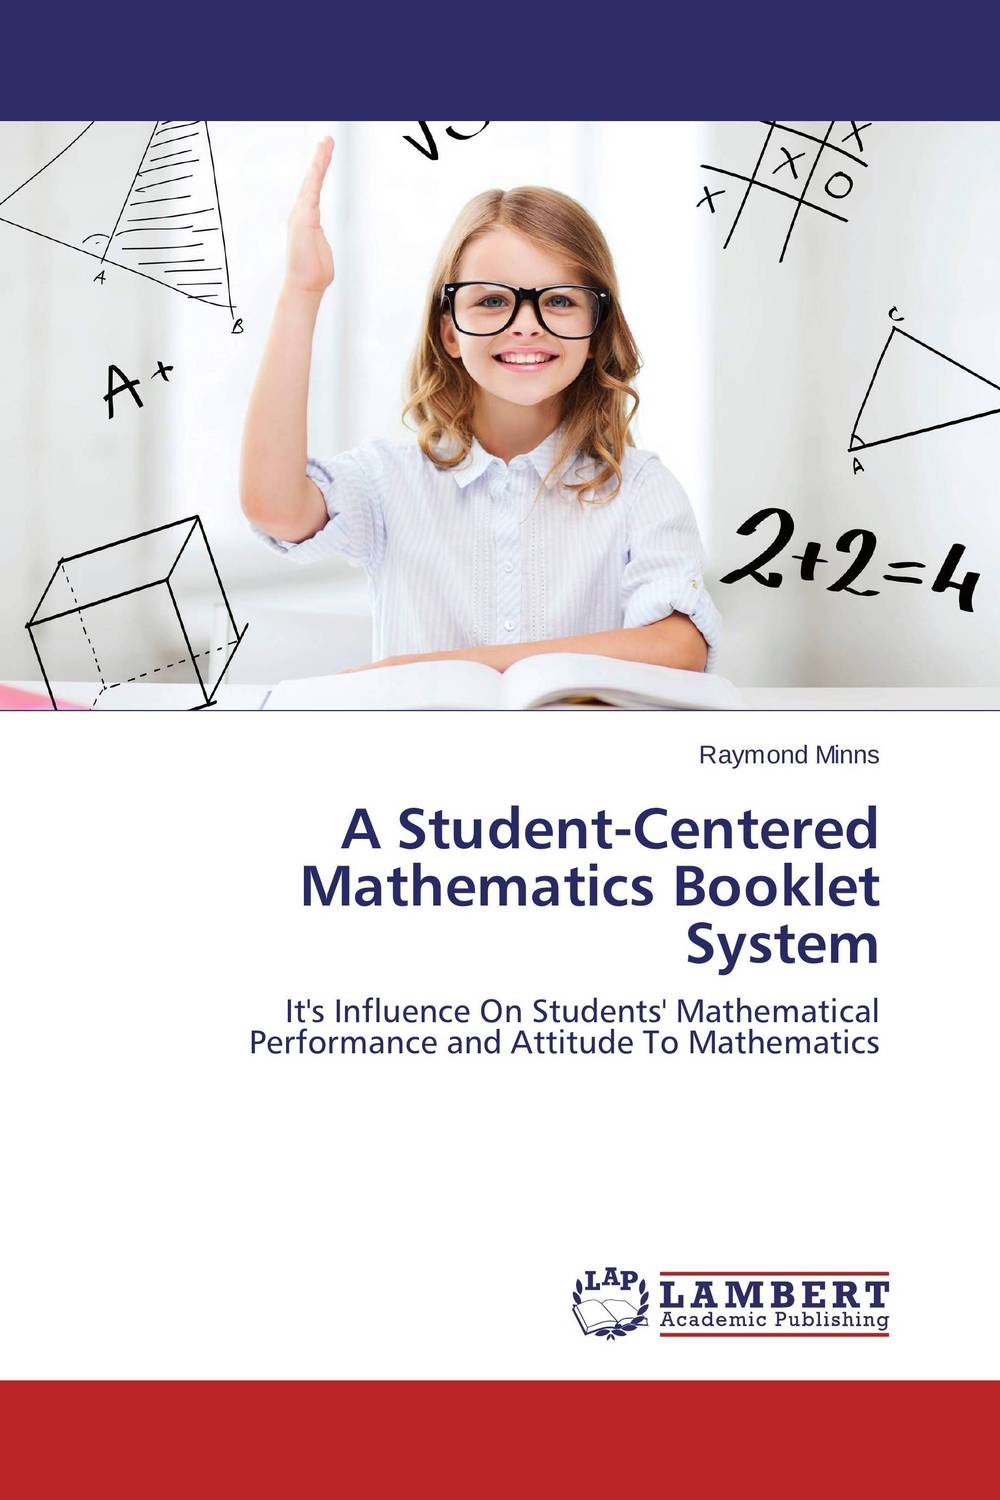 A Student-Centered Mathematics Booklet System raymond minns a student centered mathematics booklet system